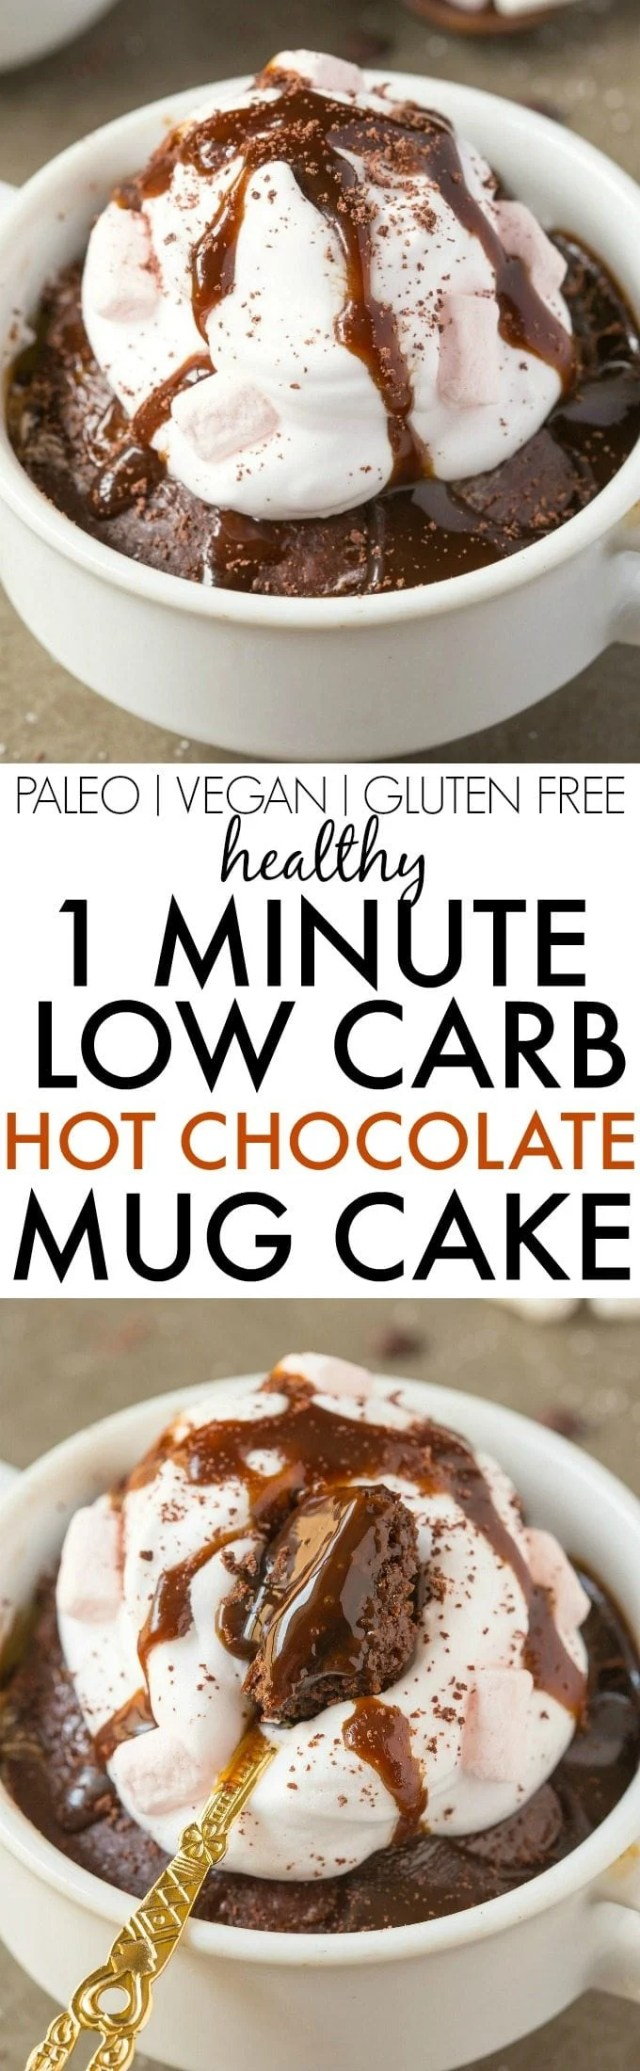 This keto chocolate brownie mug cake is the BEST vegan and keto chocolate fix ready in one minute! An easy keto chocolate dessert recipe made with coconut flour and super low carb- No sugar, NO eggs and completely paleo and gluten-free! #ketodessert #ketorecipe #vegandessert #mugcake #lowcarb #mugbrownie